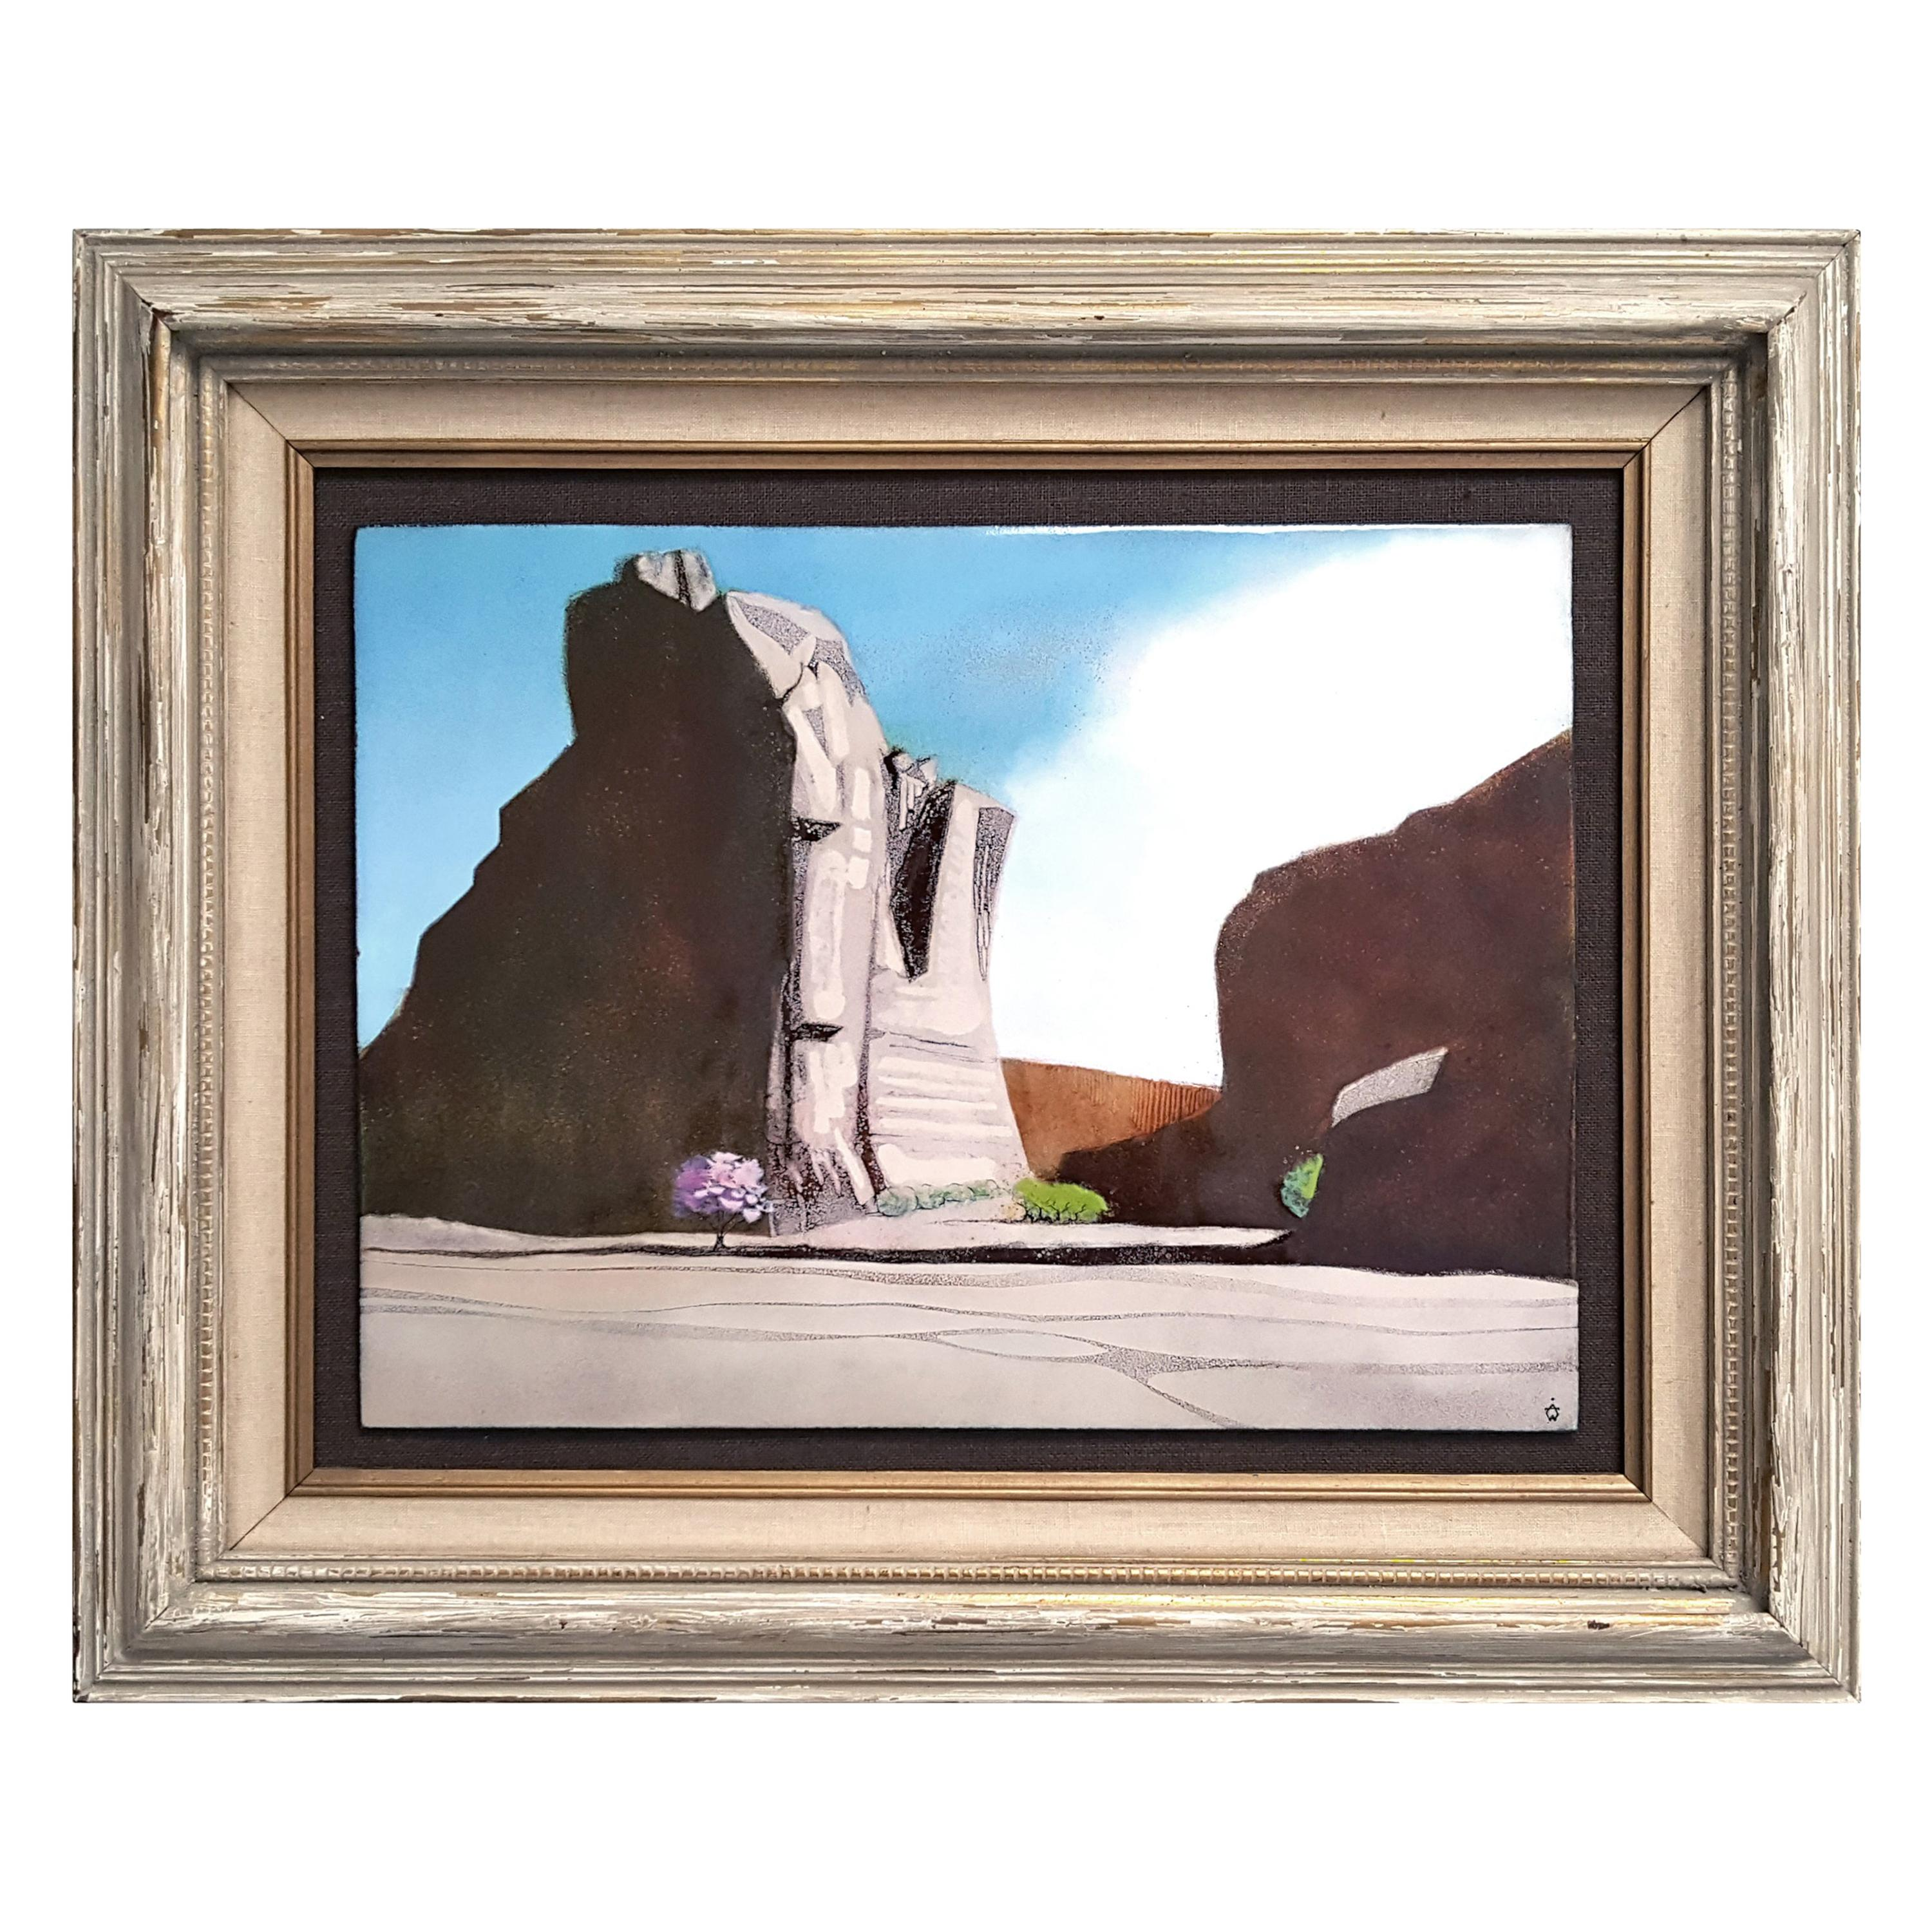 'Canyon De Chelly' by Irwin Whitaker